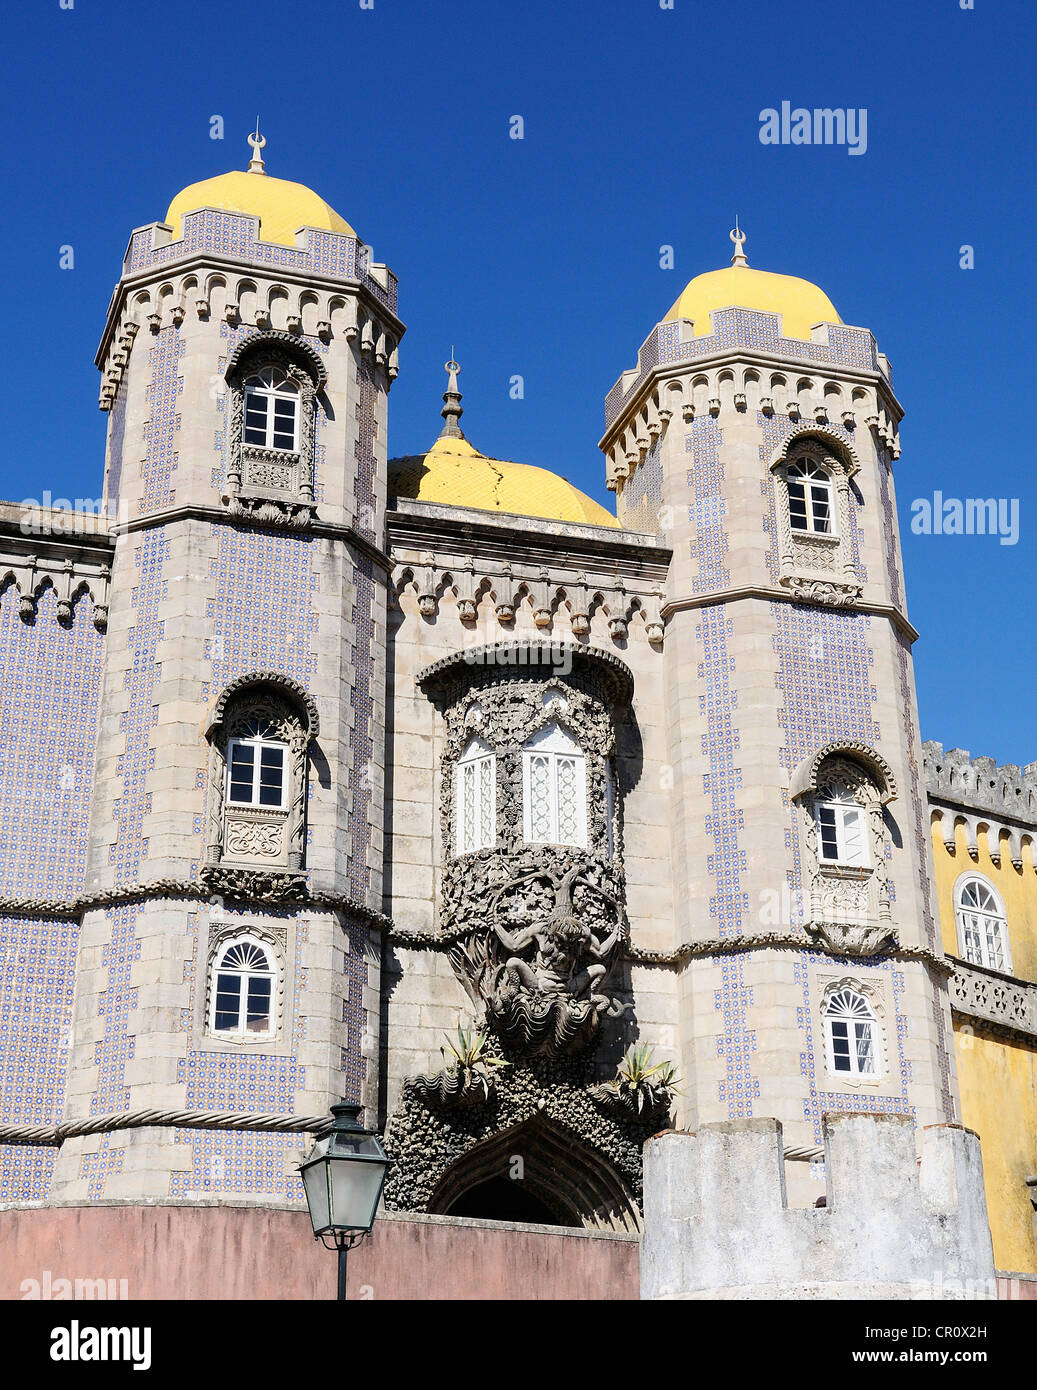 Pena National Palace in Sintra, Portugal (Palacio Nacional da Pena) Stock Photo